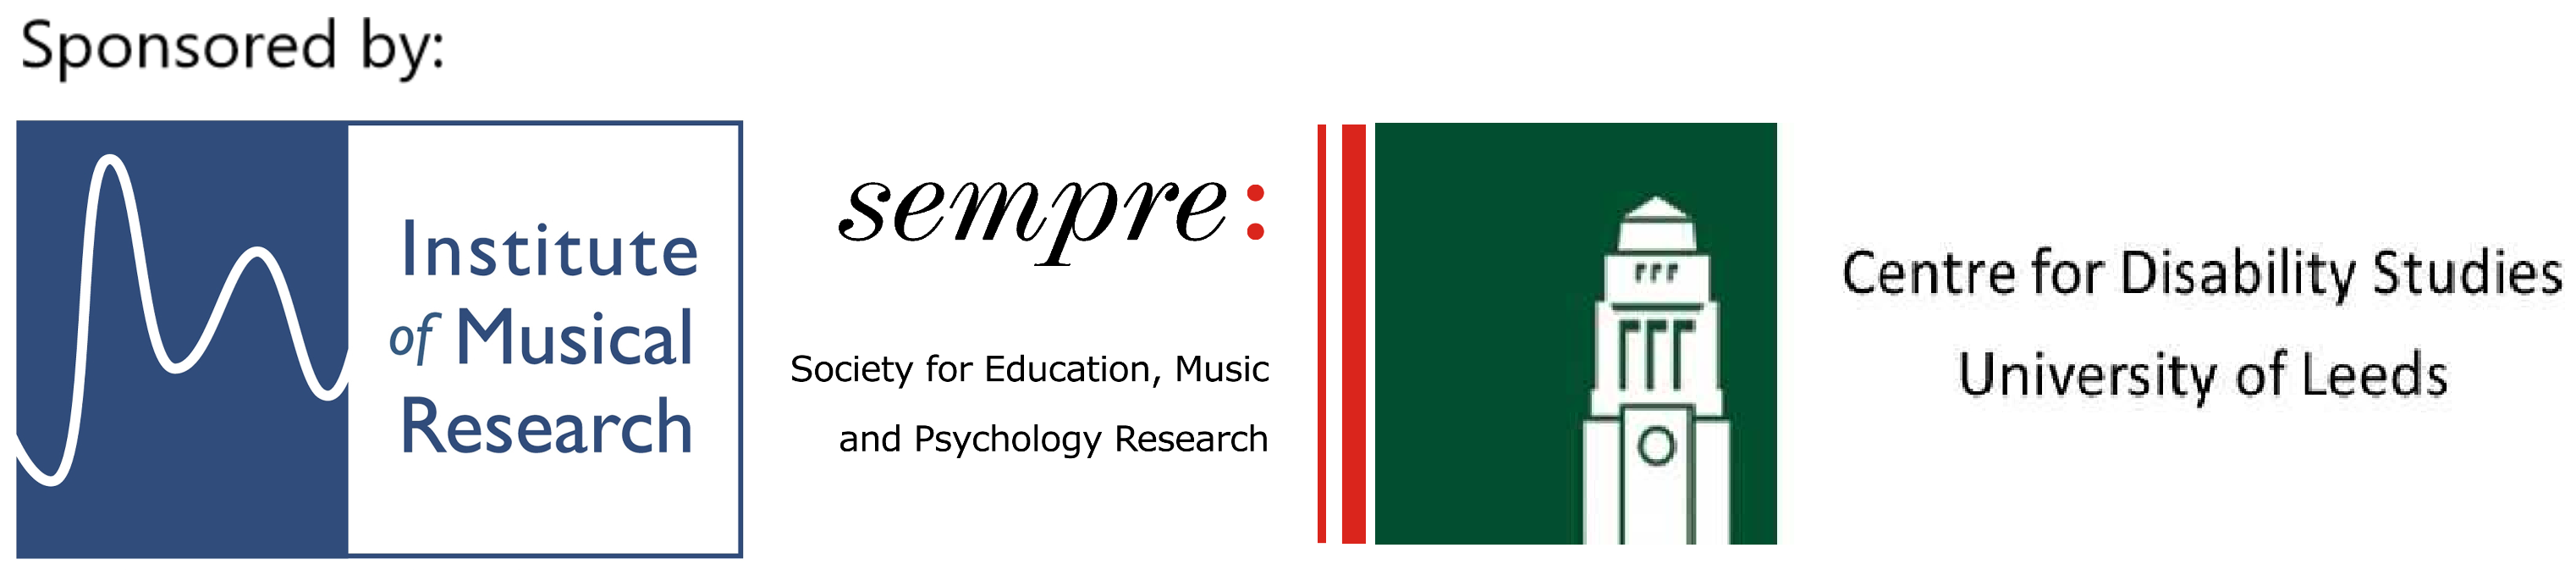 Sponsor logos: the Institue of Musical Research, the Society for Education, Music and Psychology Research (SEMPRE), and the Centre for Disability Studies University of Leeds